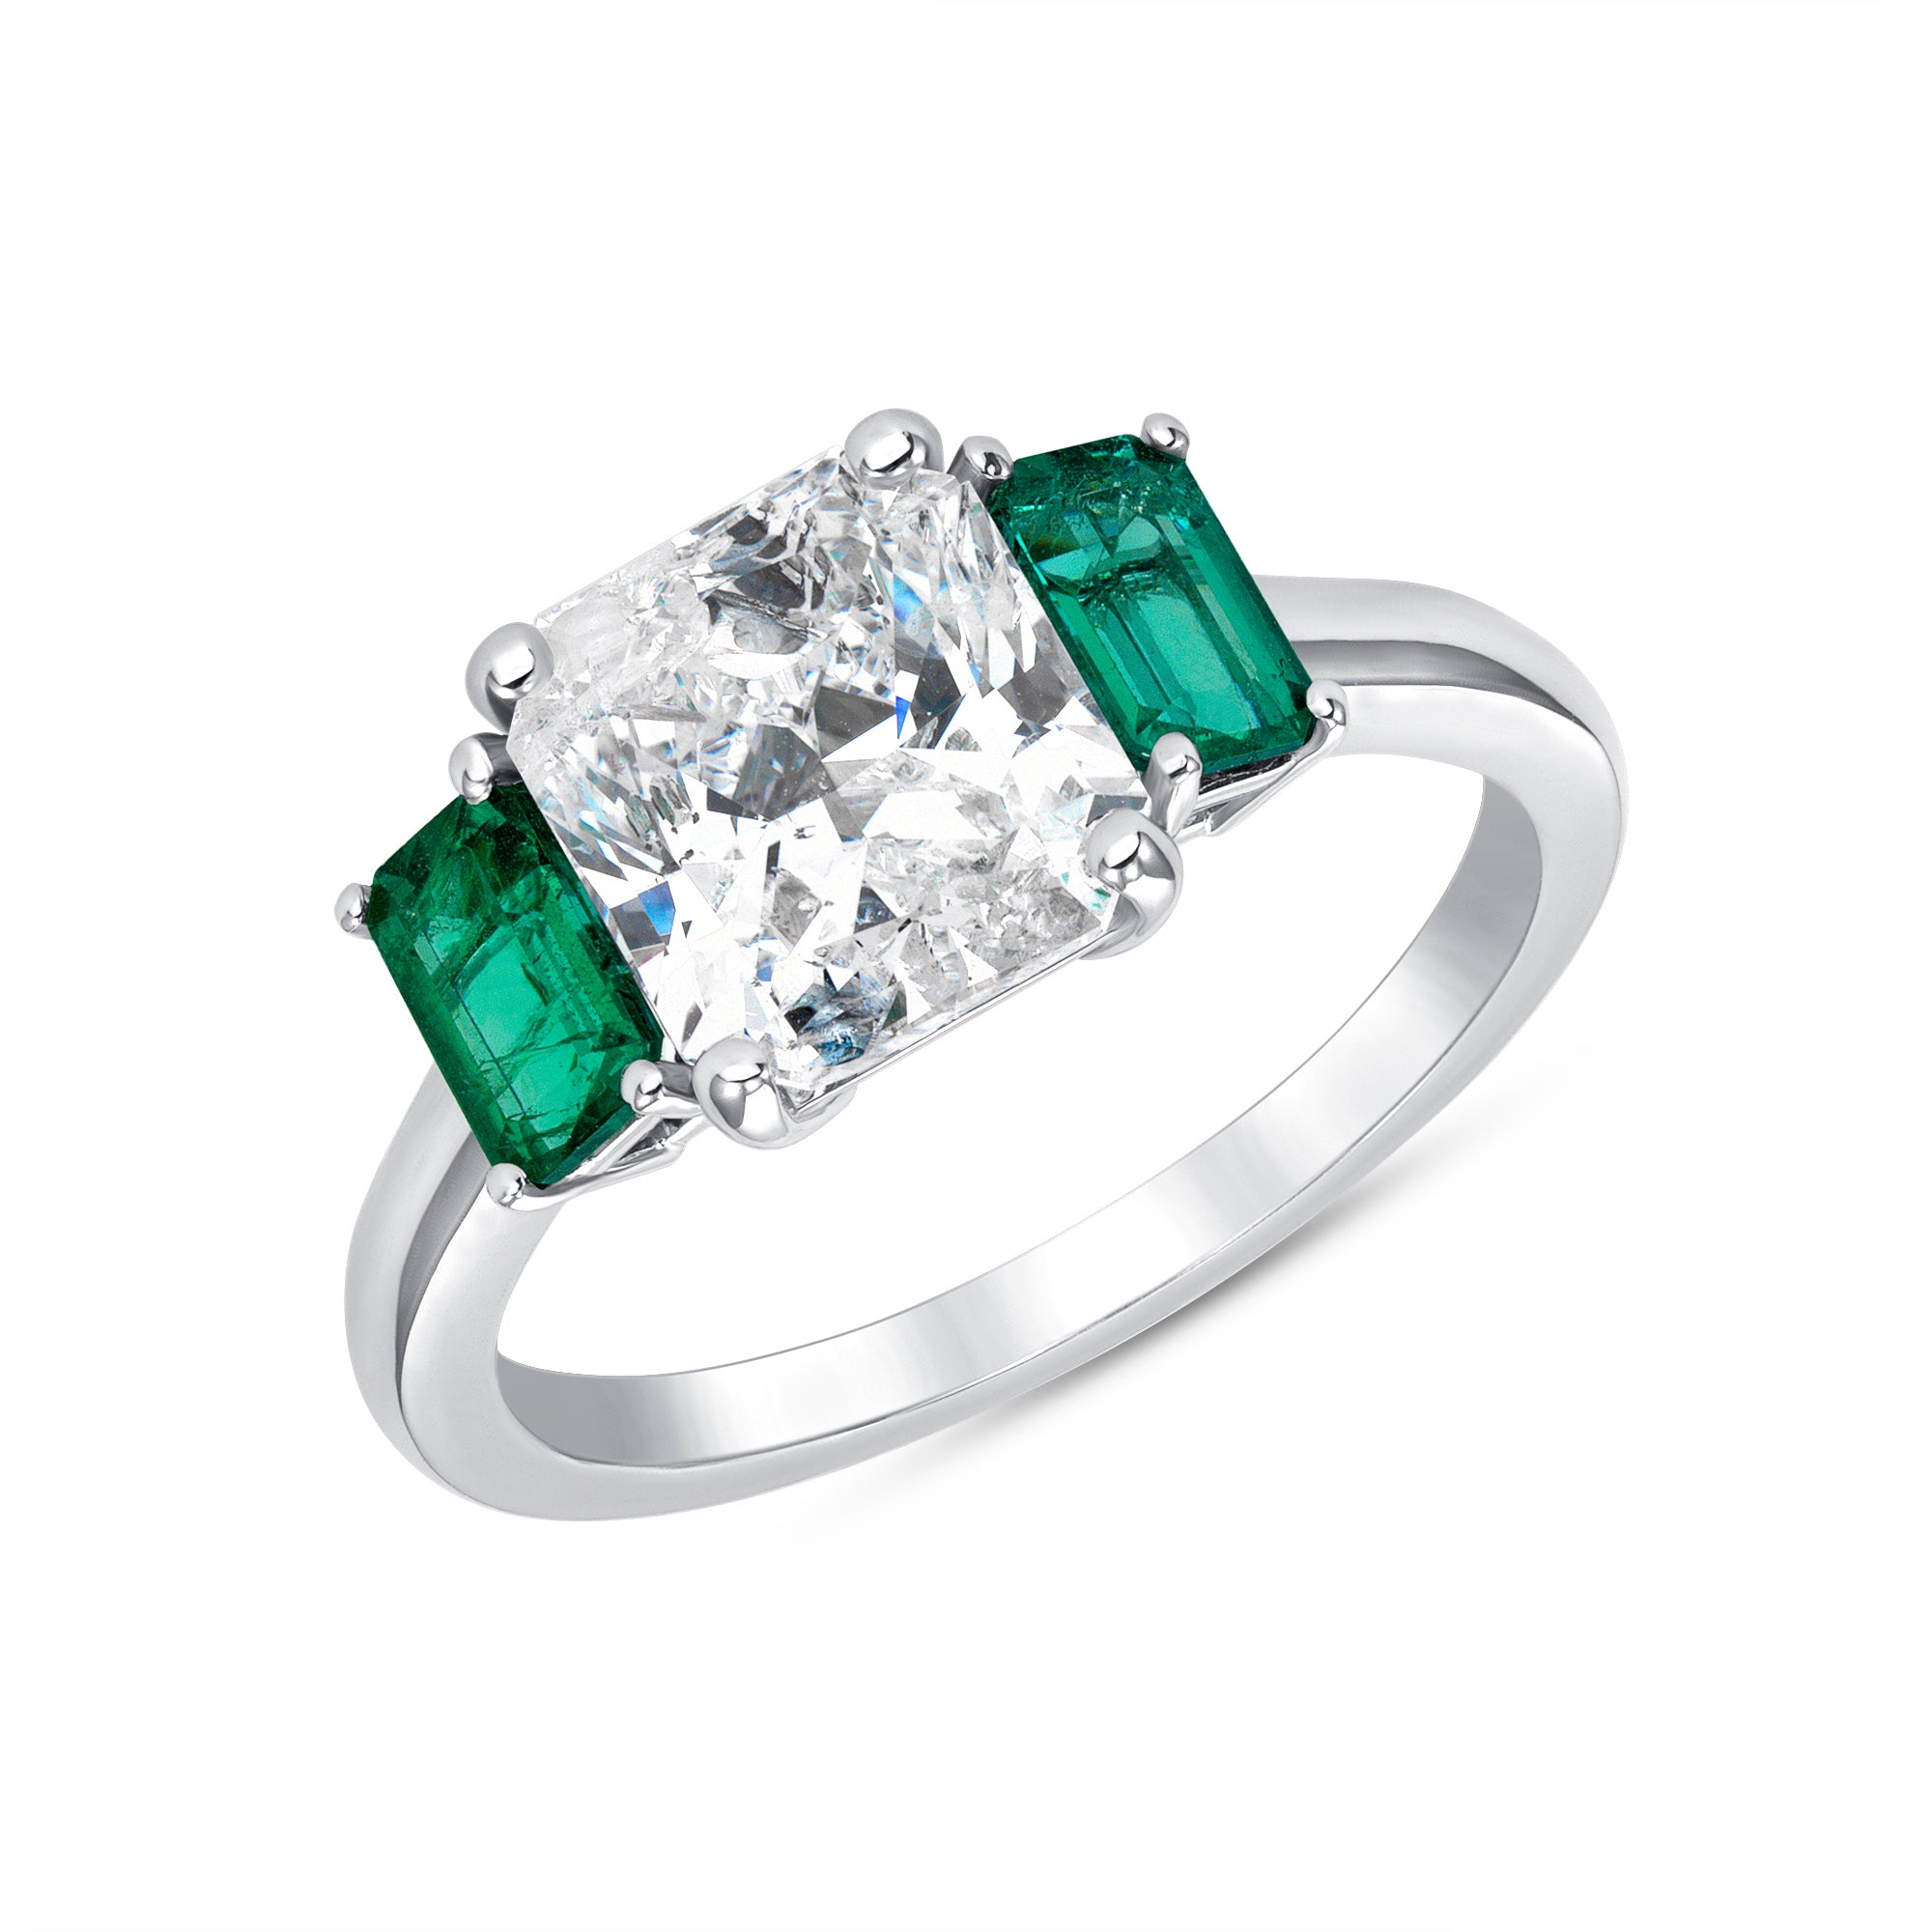 New Emerald Jewelry from deBebians